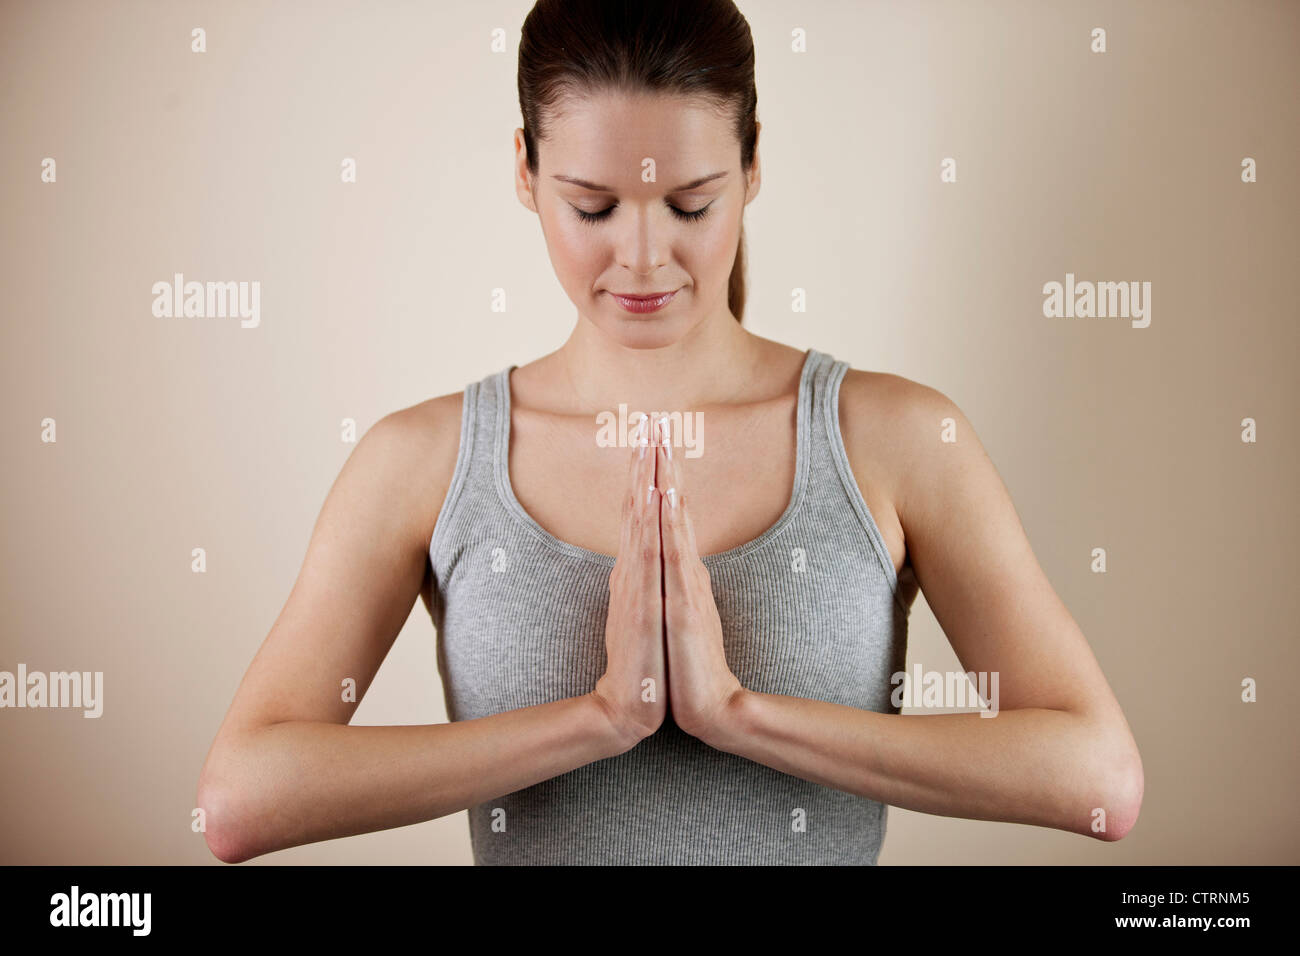 A young woman meditating, hands in prayer position - Stock Image